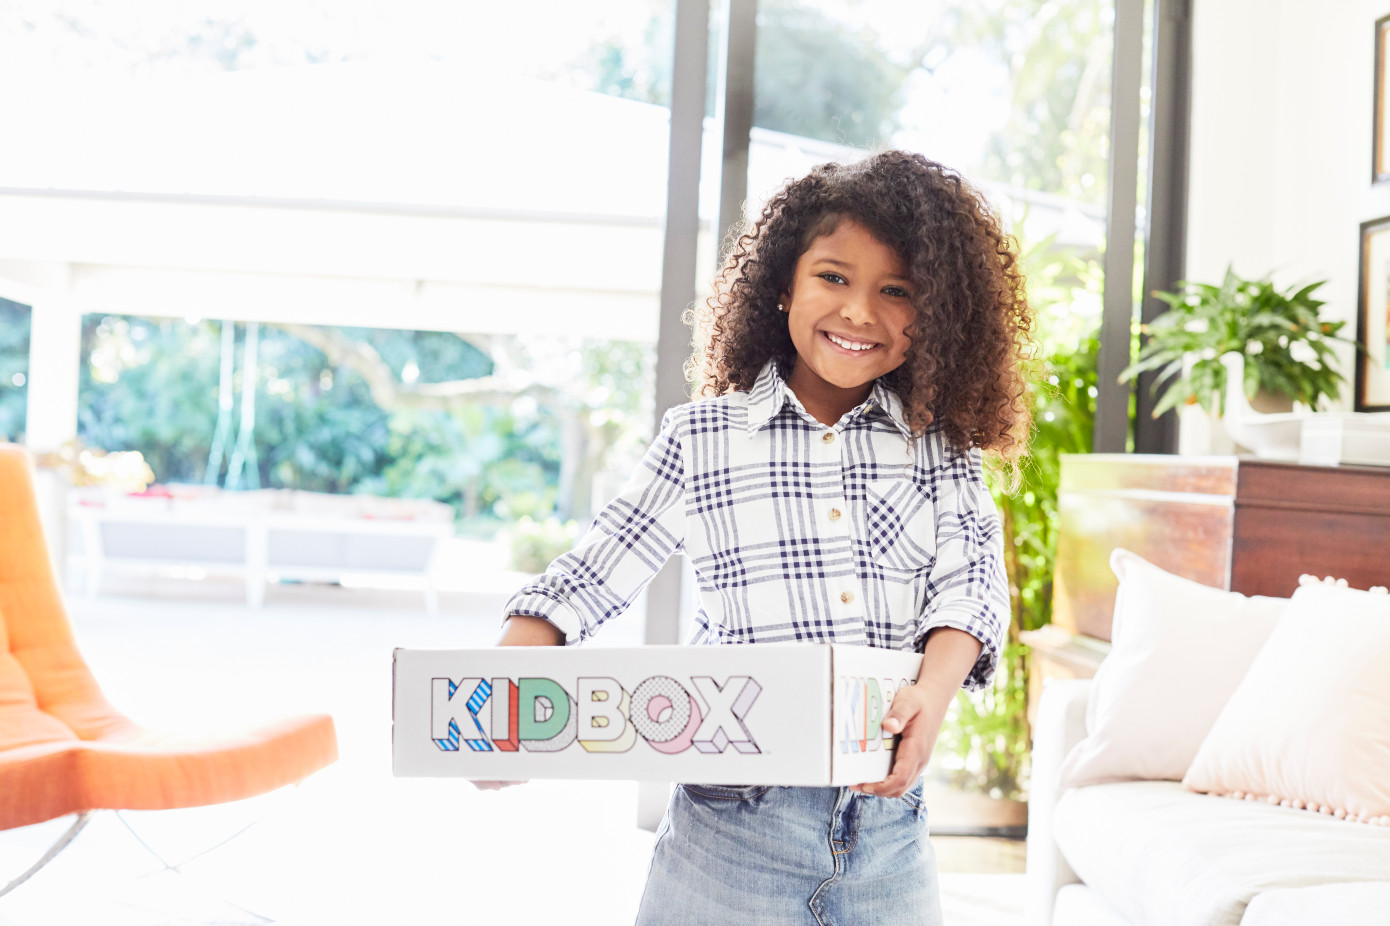 Kidbox raises $15.3 million for its personalized children's clothing box